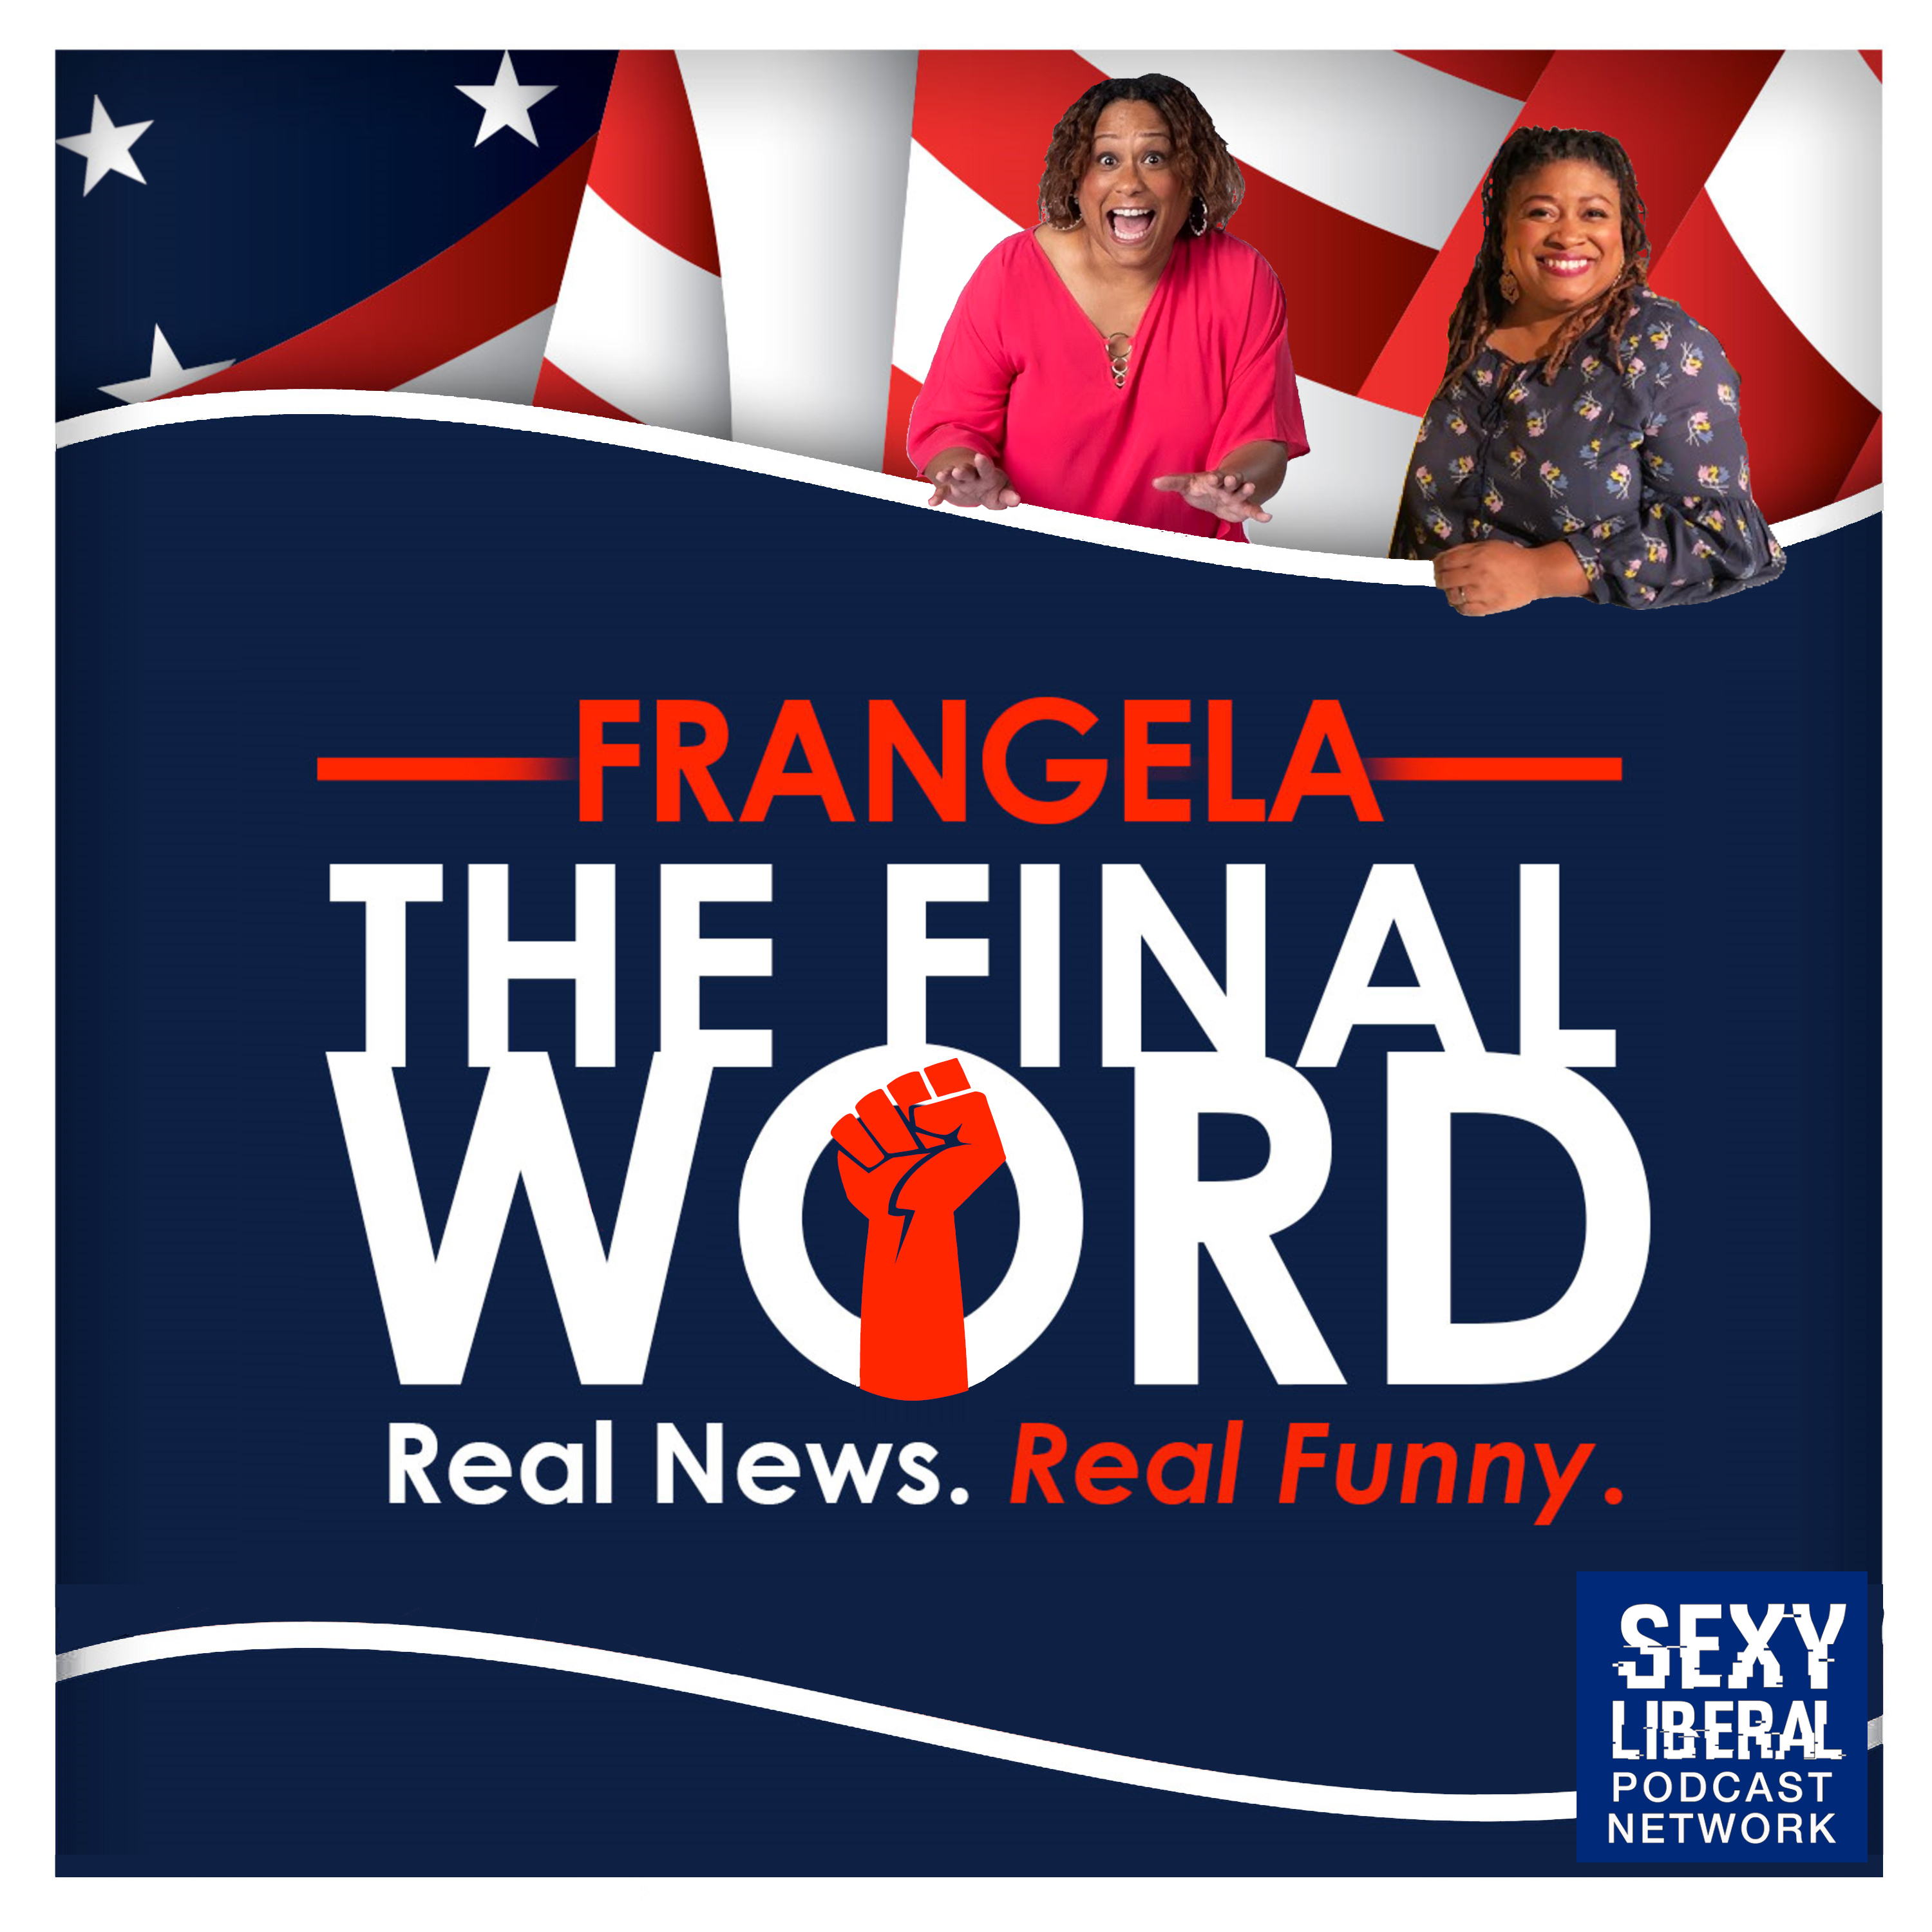 The Final Word graphic